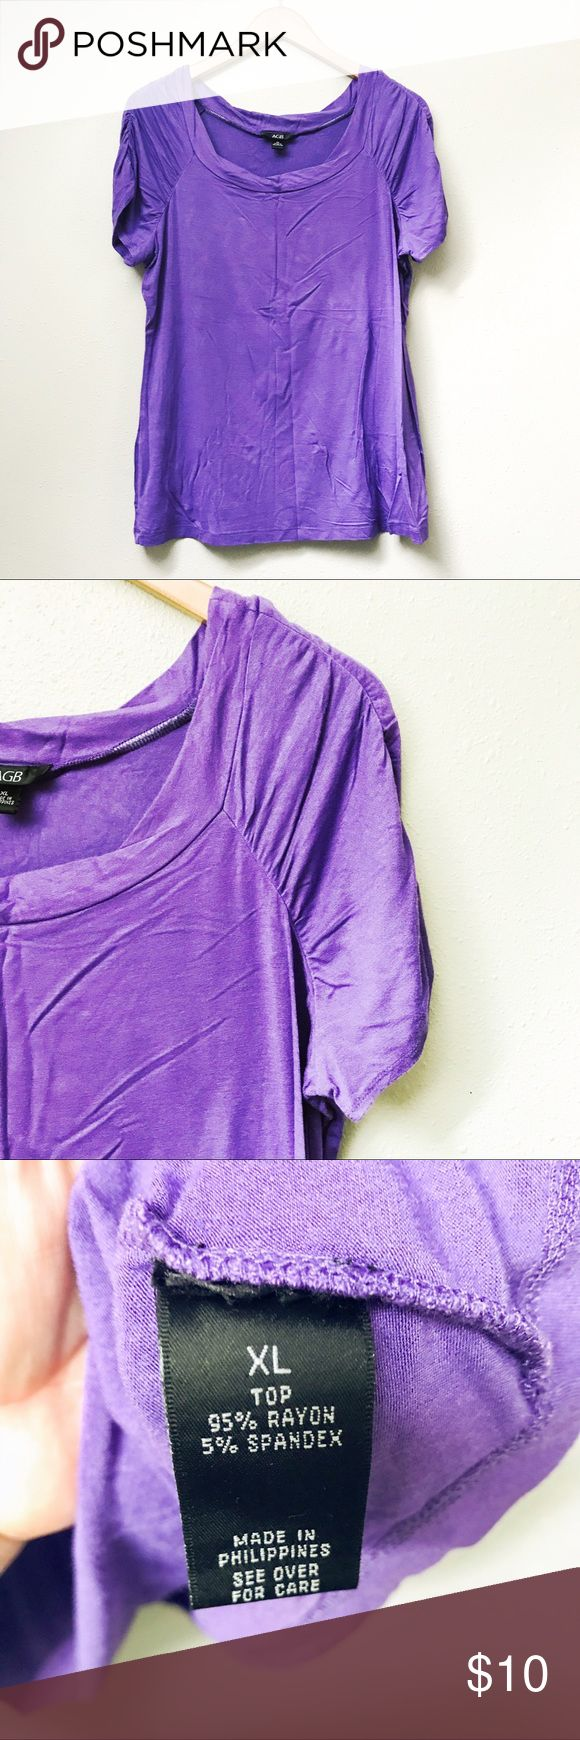 Purple Short Sleeve Top Short-sleeved purple top featuring a scooped neck and ruched shoulder details. New without tags.  ✅Price Firm Unless Bundled ✅Ask About Bundle Special 4 Items $10 & Under 🚫Trades 🚫Off-Posh 🚫Modeling  💞Shop with ease; I'm a Posh Ambassador.💞 AGB Tops Tees - Short Sleeve